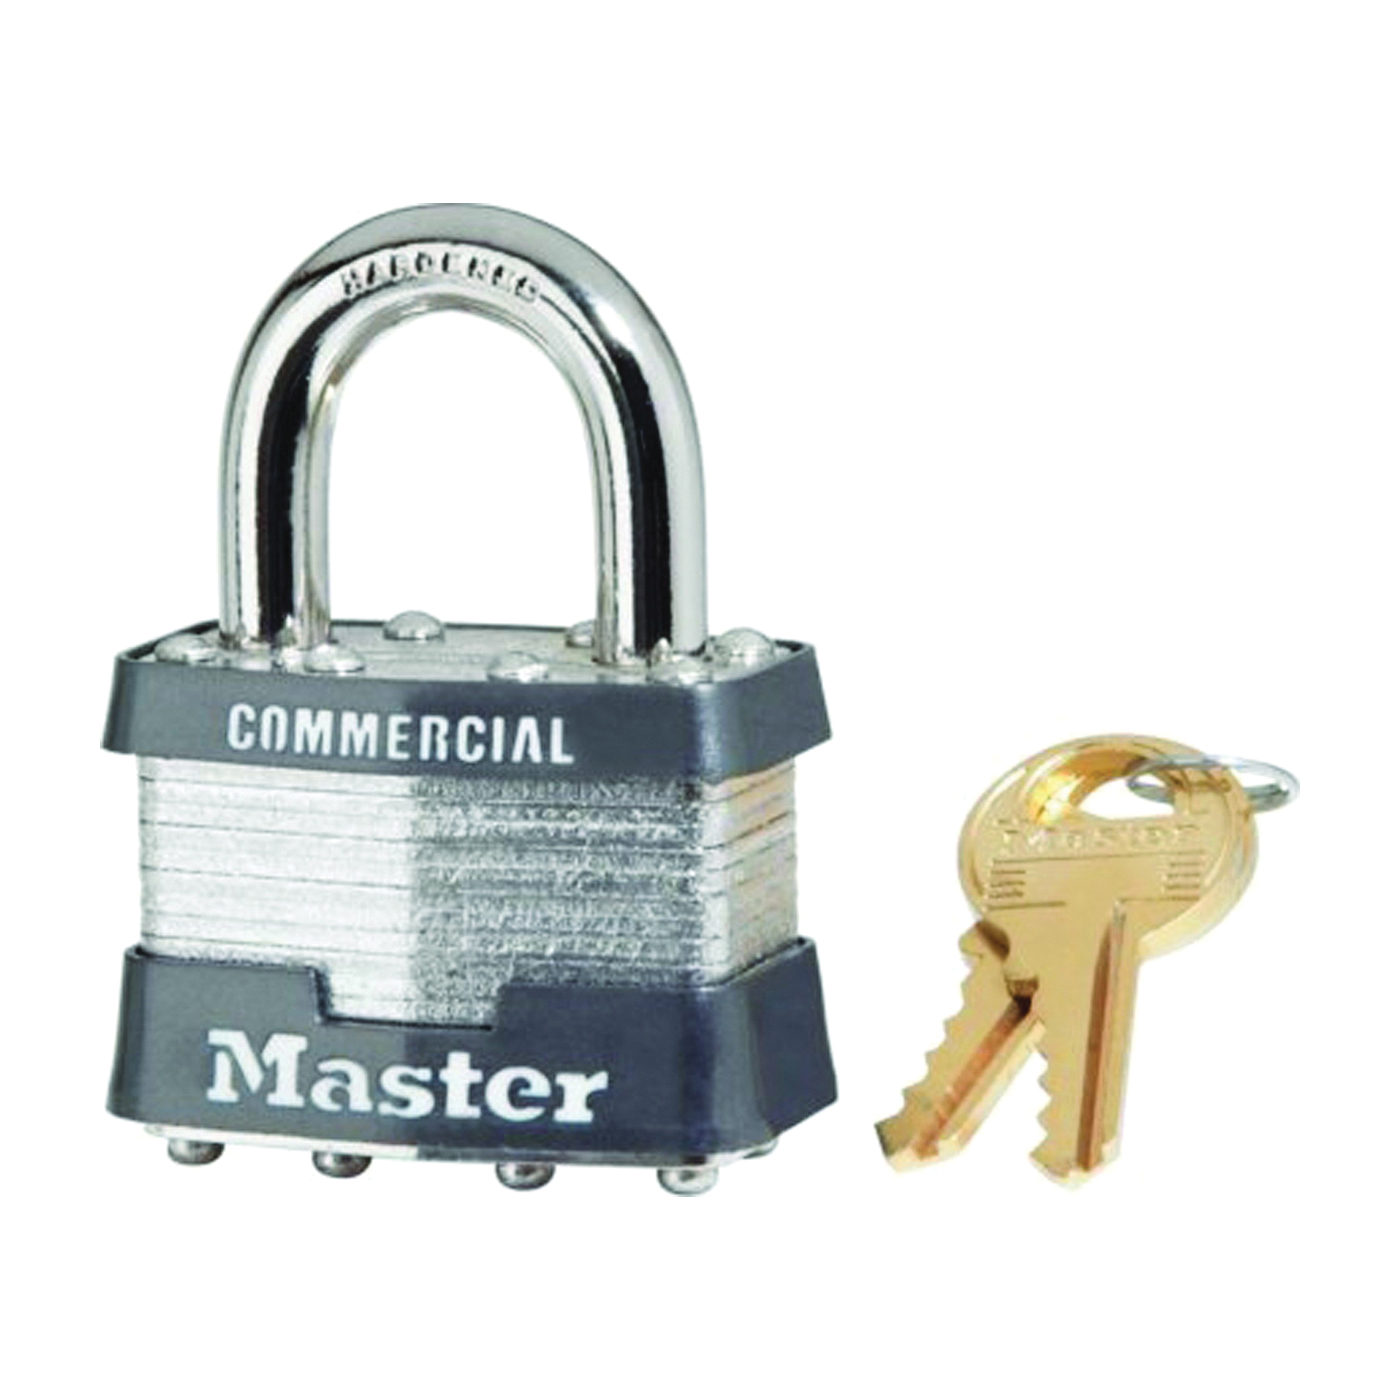 Picture of Master Lock 1KA 2043 Keyed Padlock, Alike Key, Open Shackle, 5/16 in Dia Shackle, 15/16 in H Shackle, Steel Body